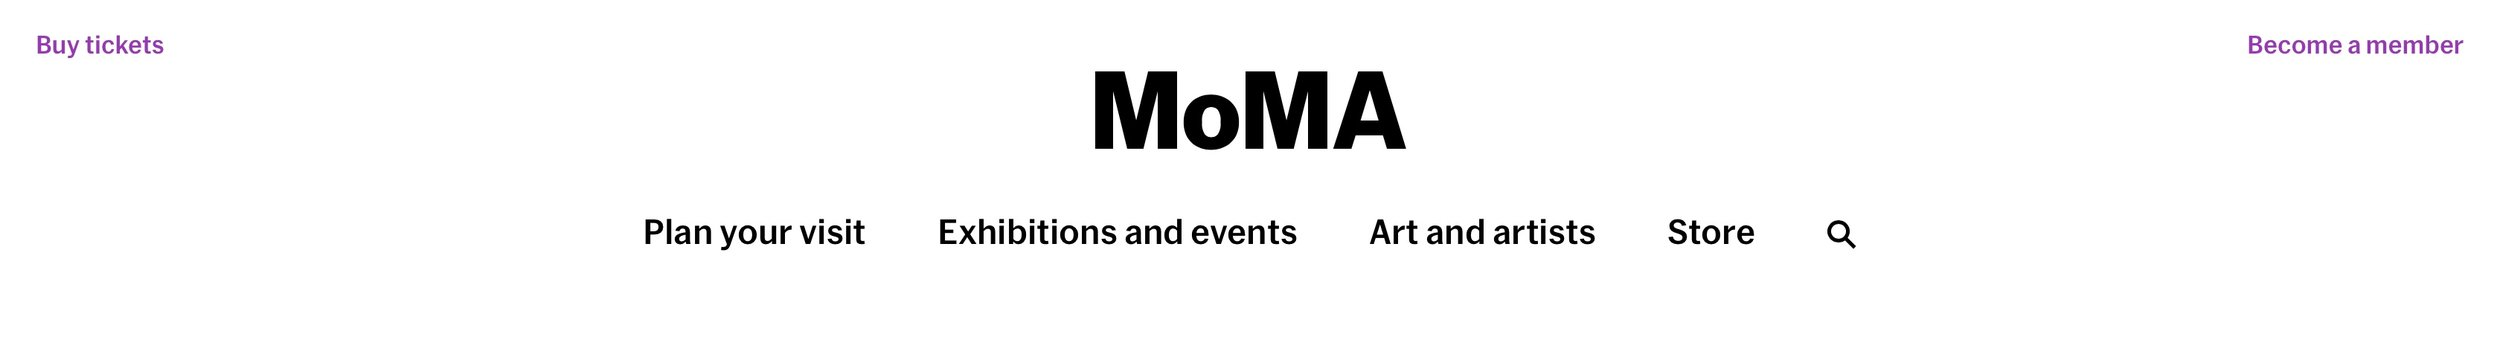 MoMA's site navigation: 4 items on the main menu